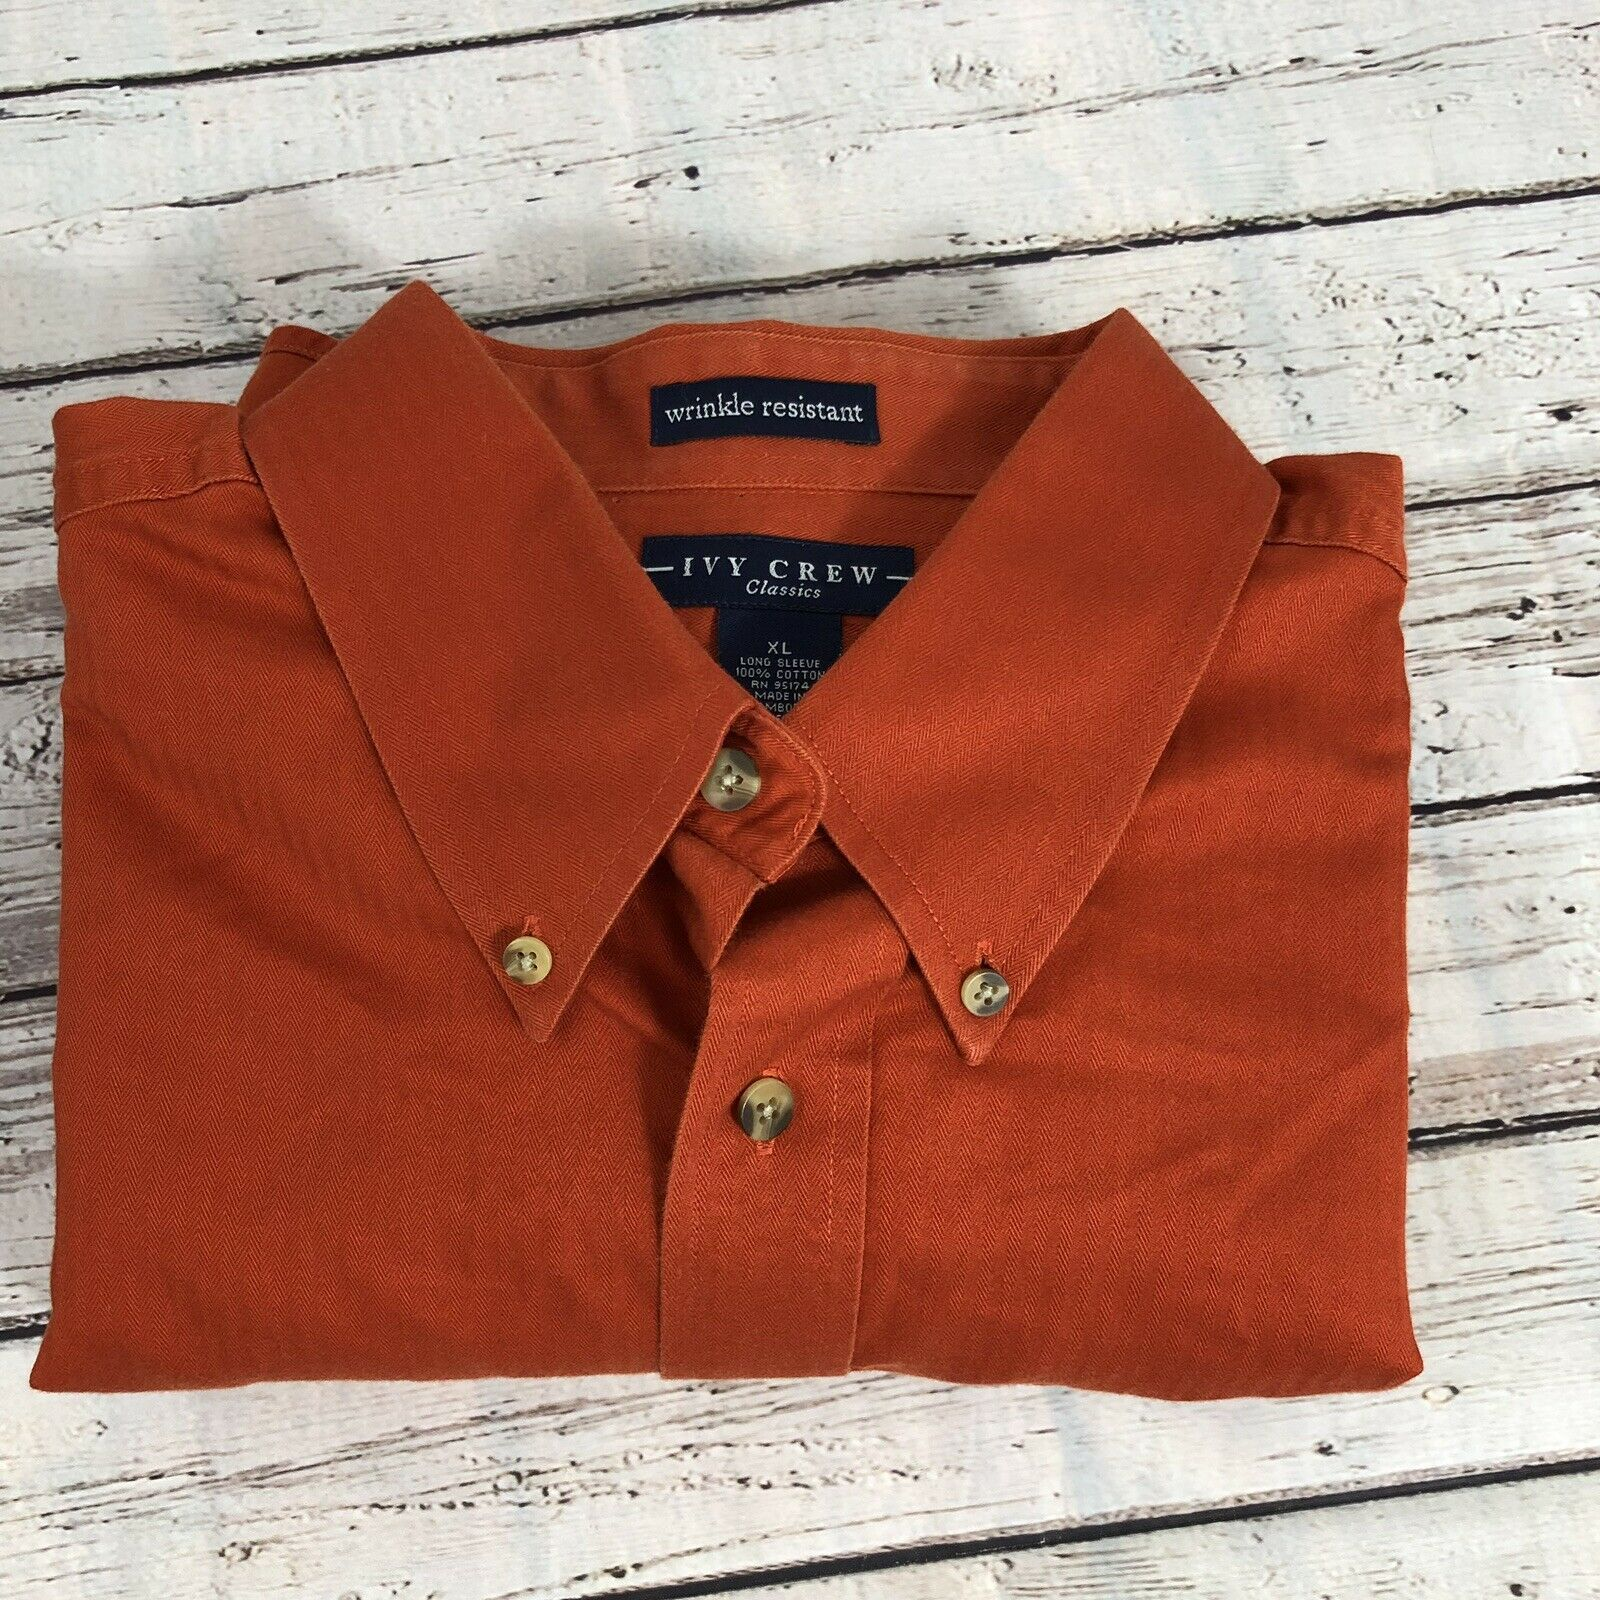 Primary image for Ivy Crew Classics Wrinkle Resistant Shirt - Size XL